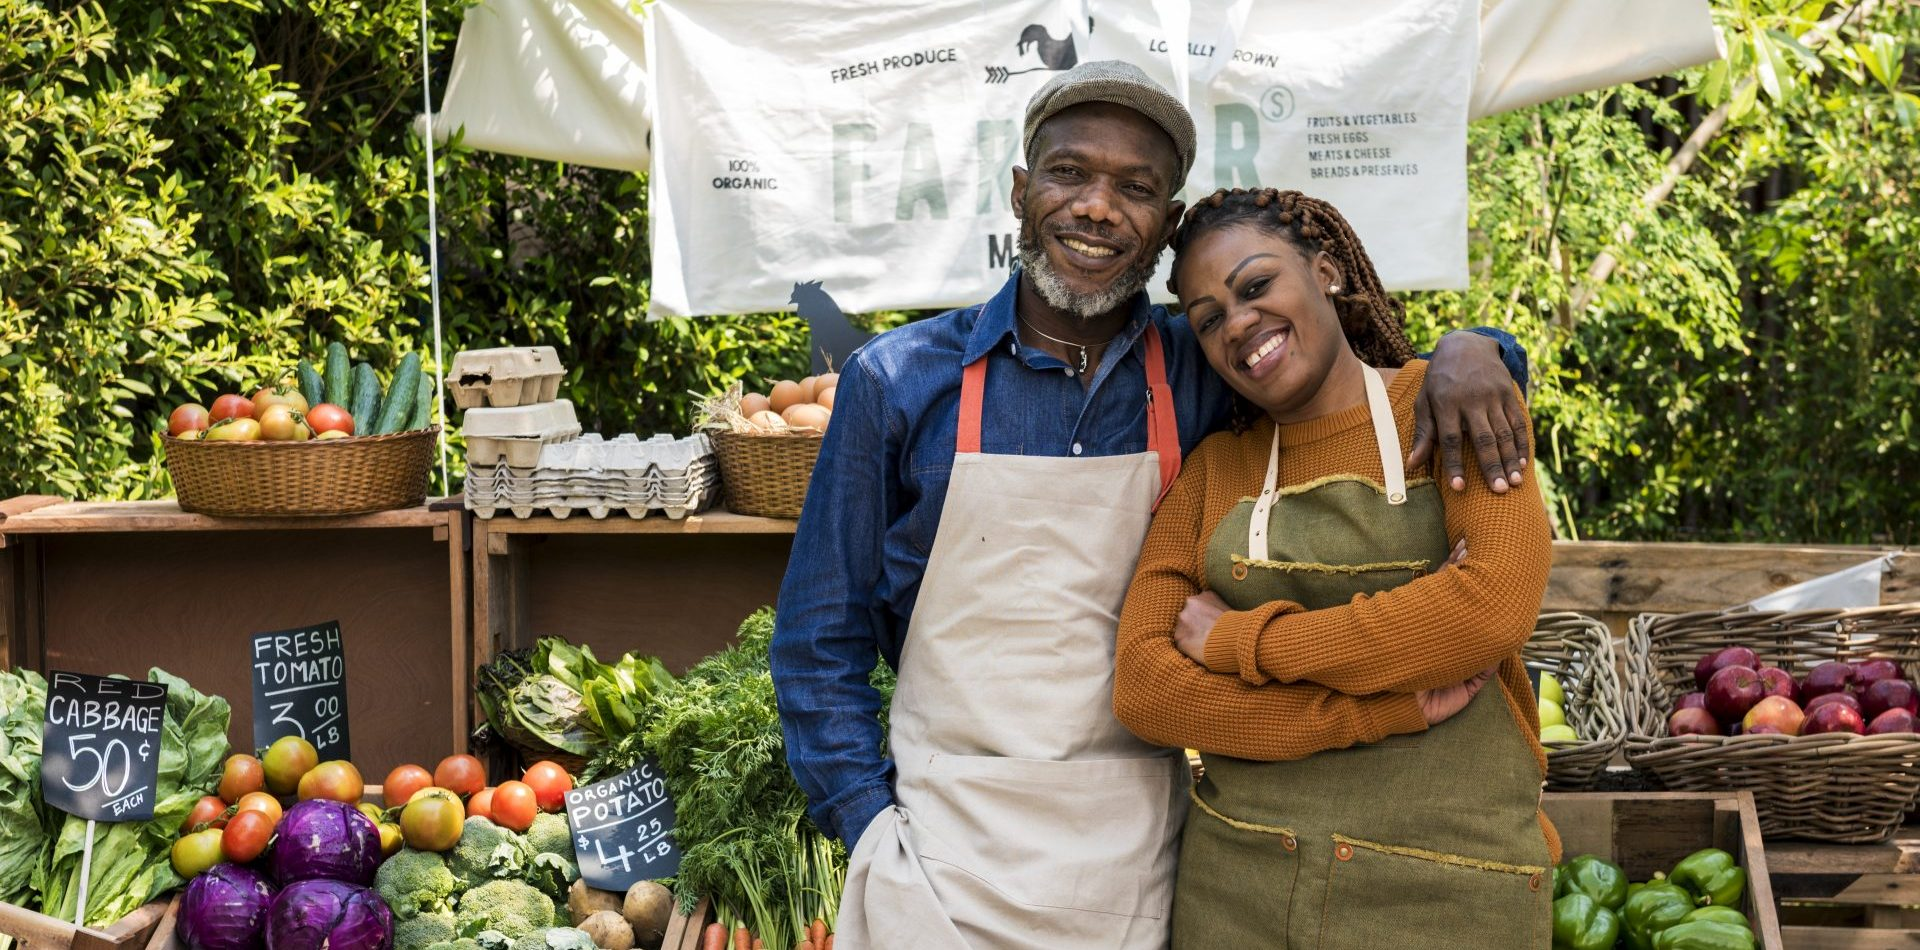 Newtopia shares ways to address SDoH with your benefits program